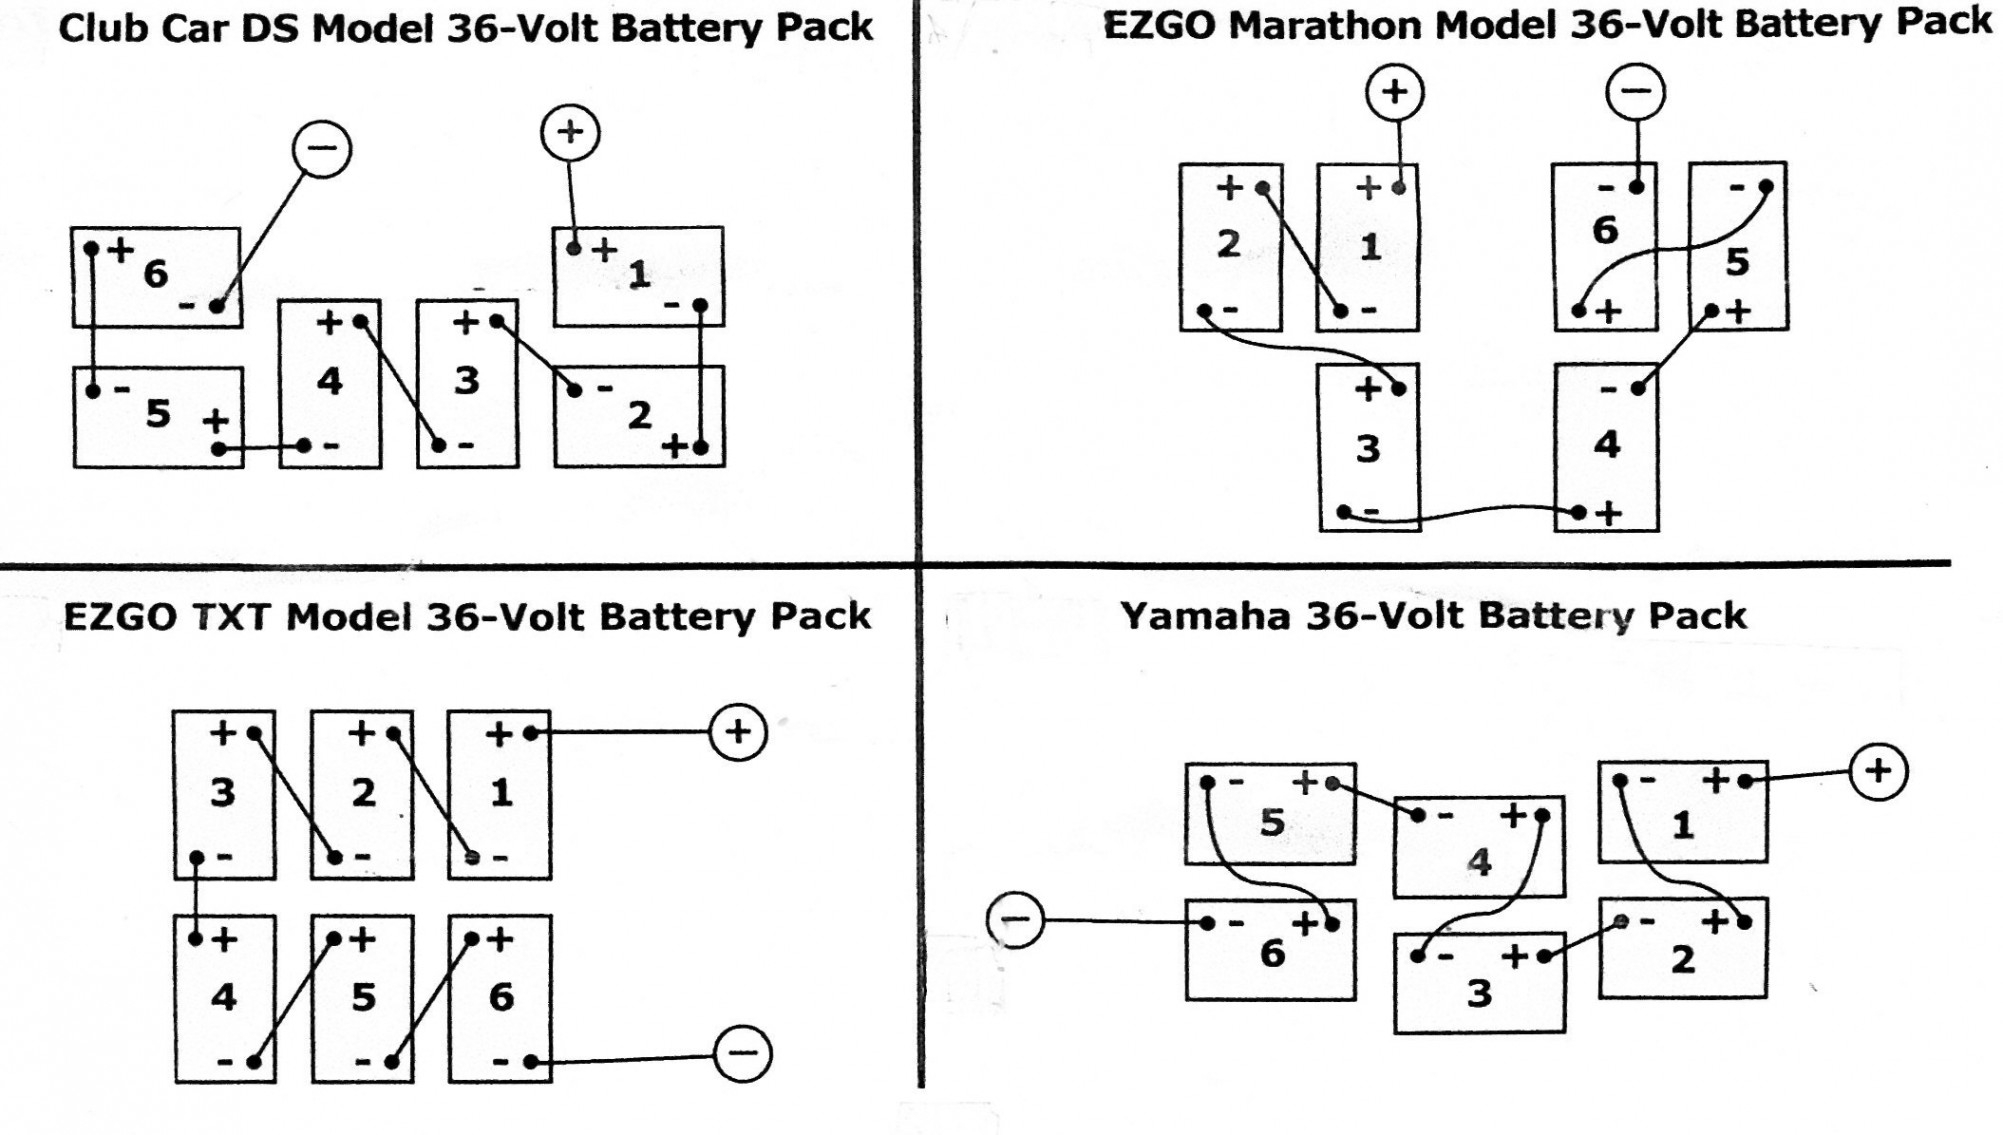 club car wiring diagram 36 volt Collection-Club Car Wiring Diagram 36 Volt – Wiring Diagrams For Yamaha Golf Carts Refrence Ez Golf 13-r